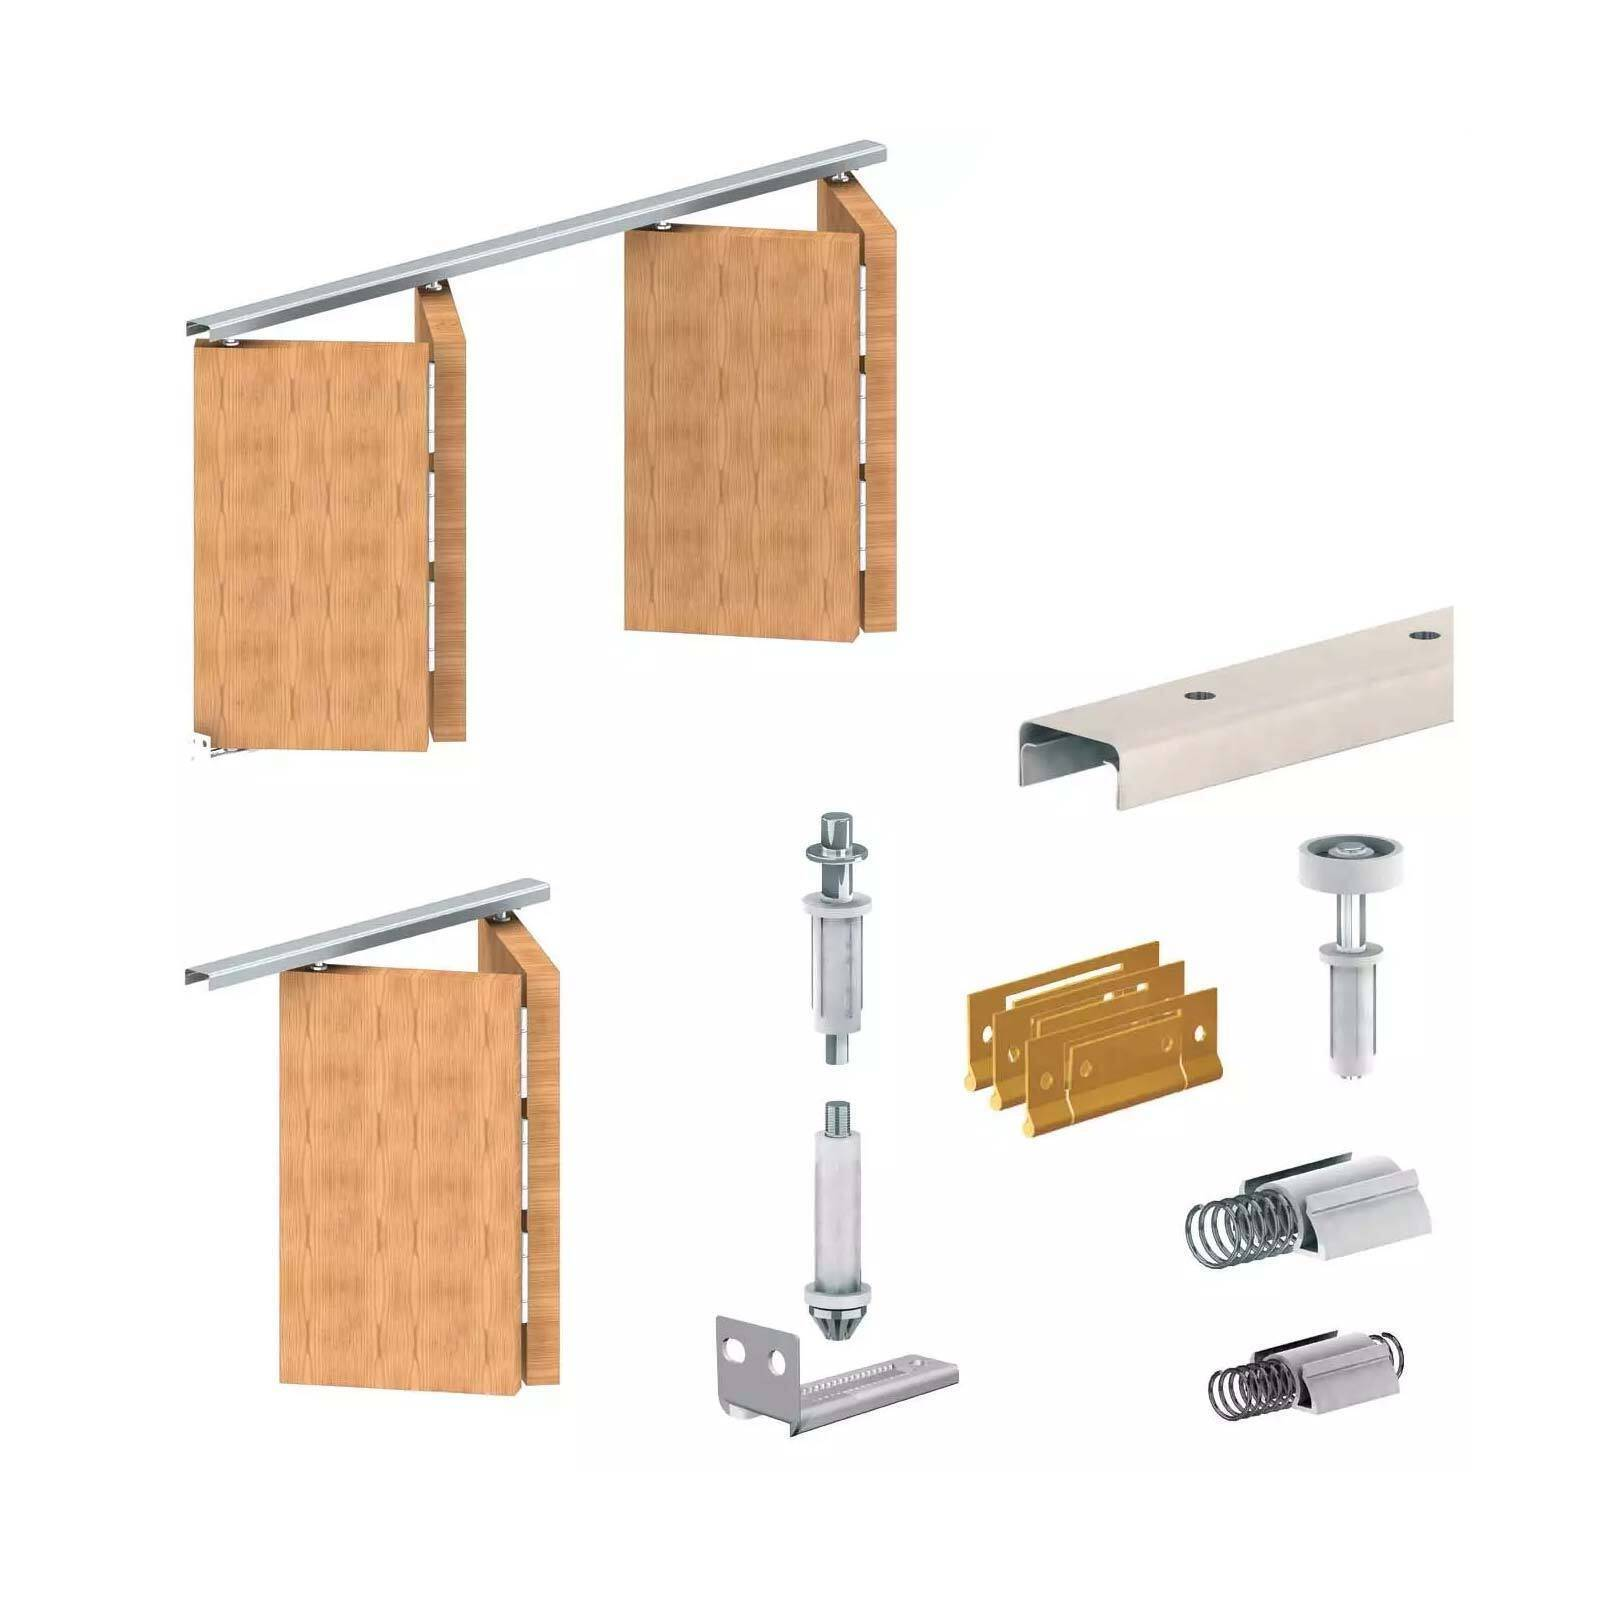 Apollo Folding Door Gear DIY Track Kit